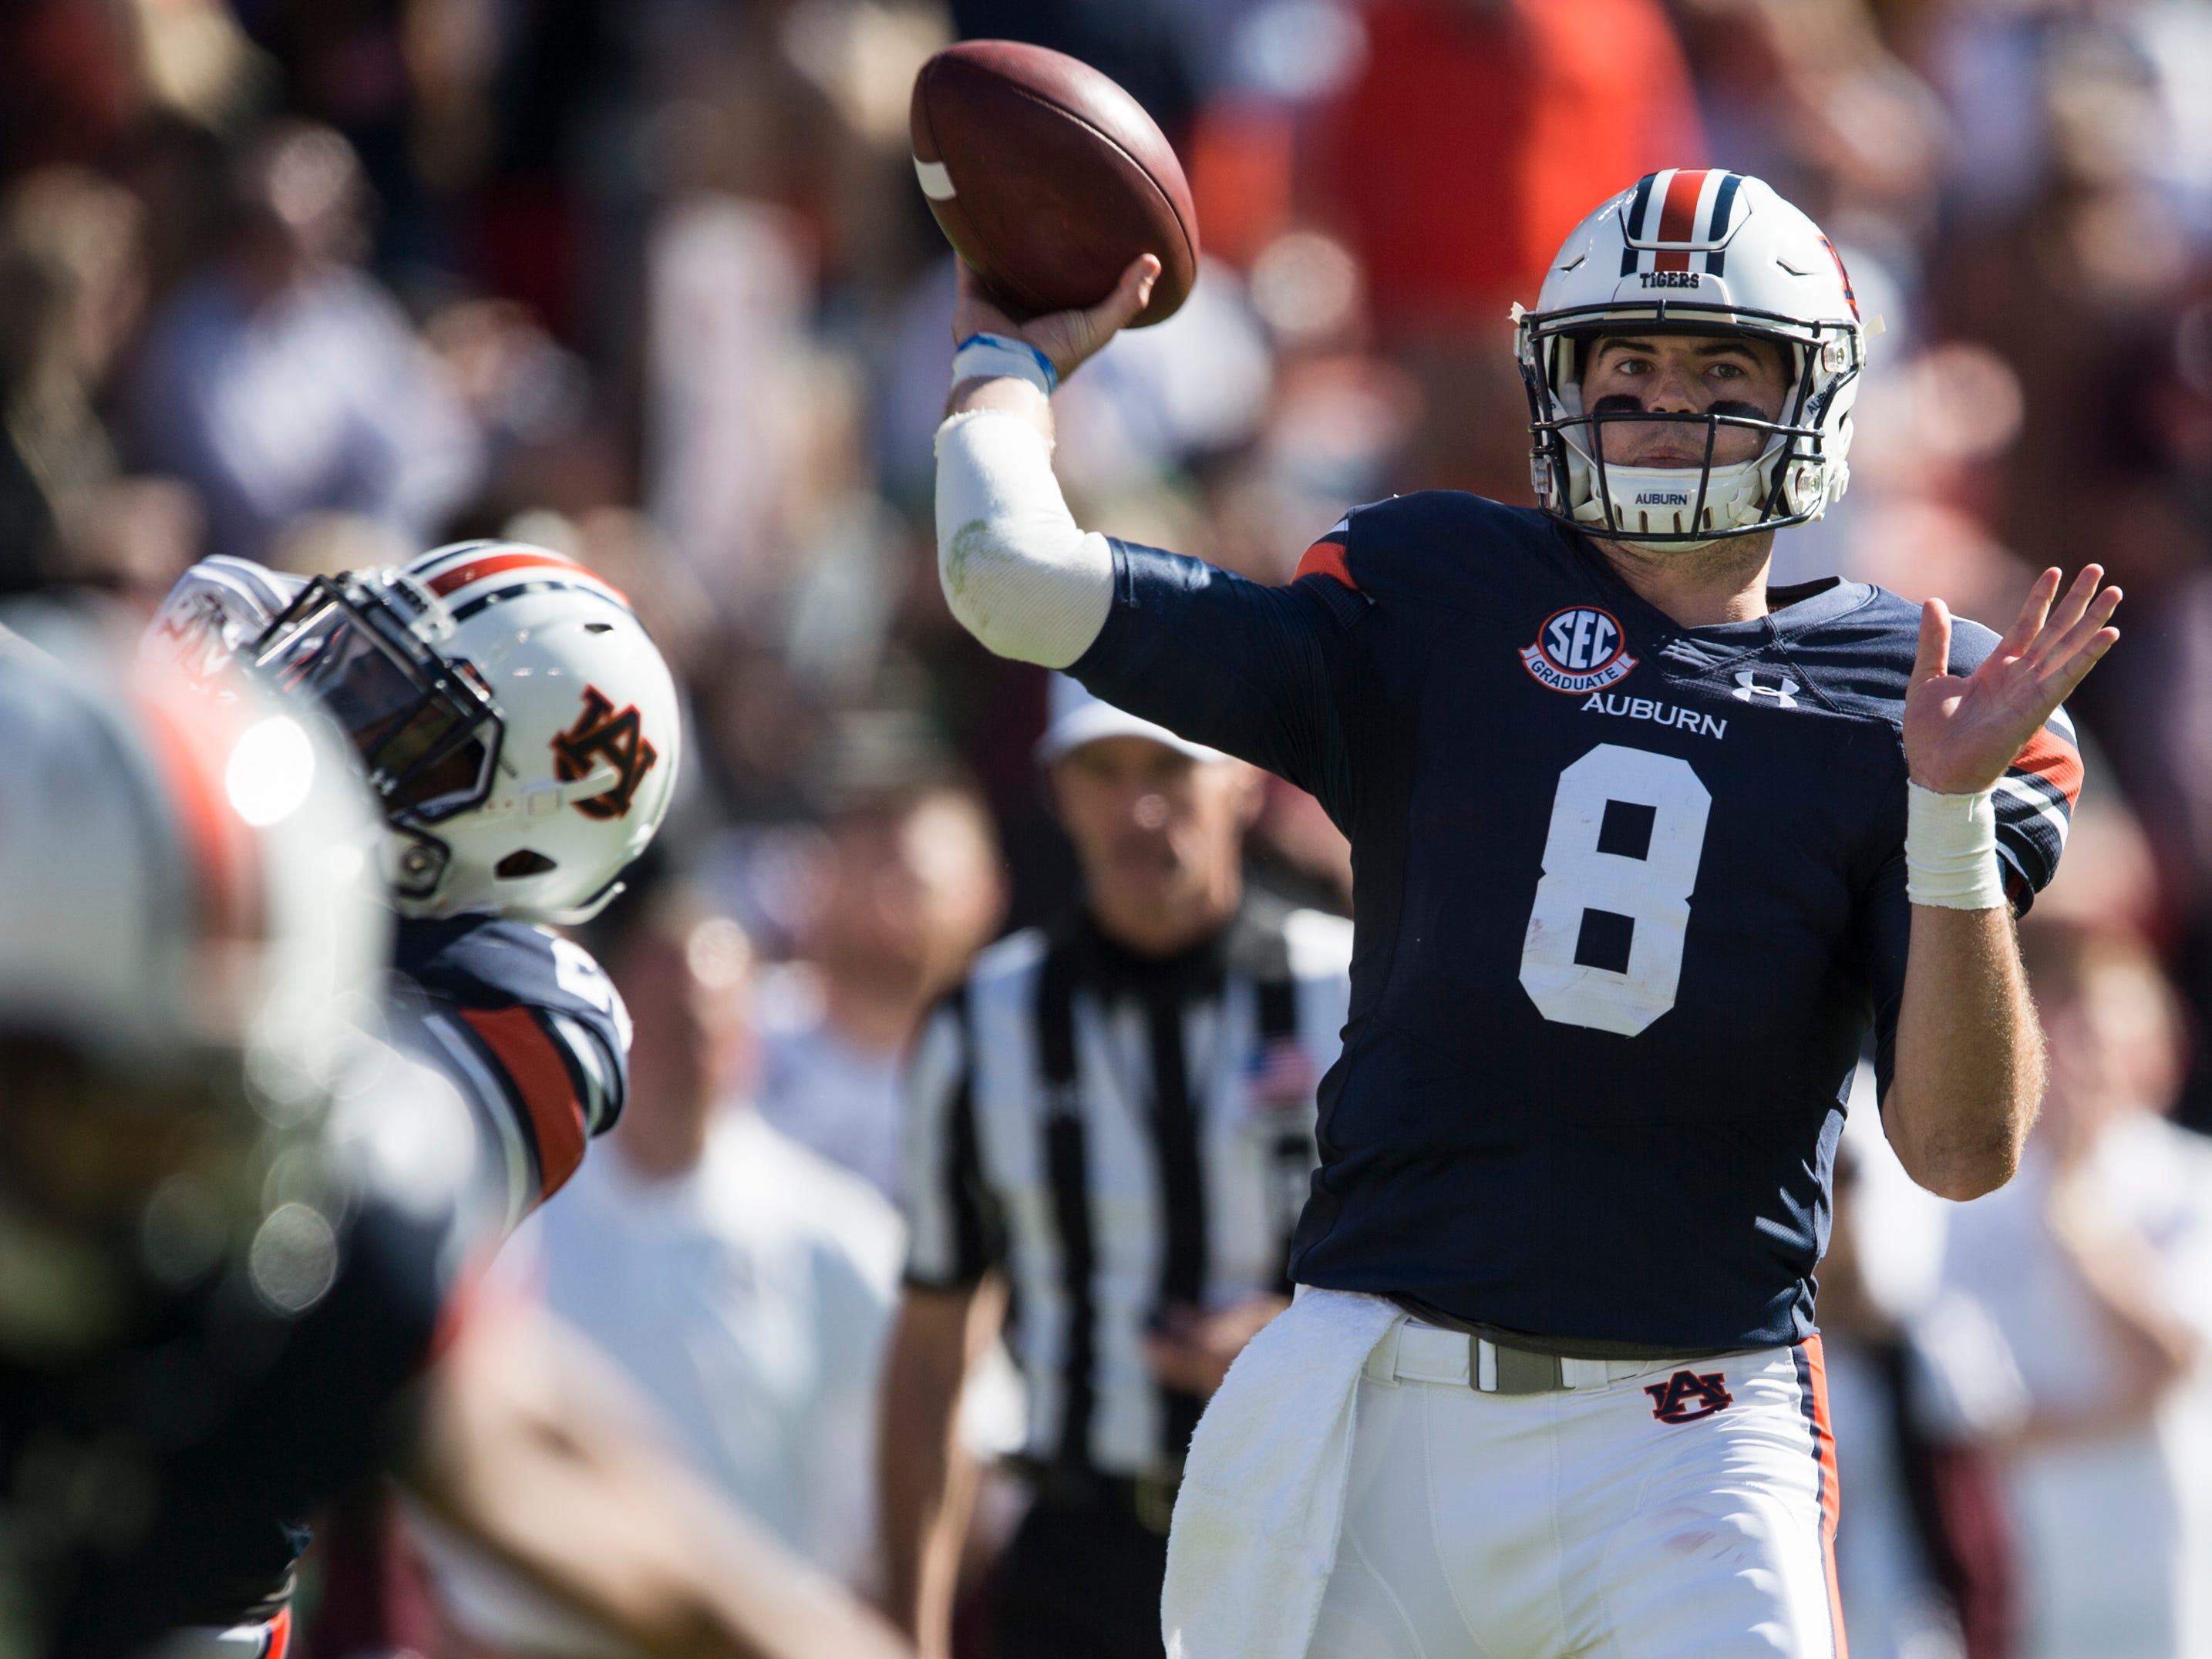 Auburn quarterback Jarrett Stidham (8) throws the game winning touchdown pass against Texas A&M at Jordan-Hare Stadium on Saturday, Nov. 3, 2018. Auburn defeated Texas A&M 28-24.